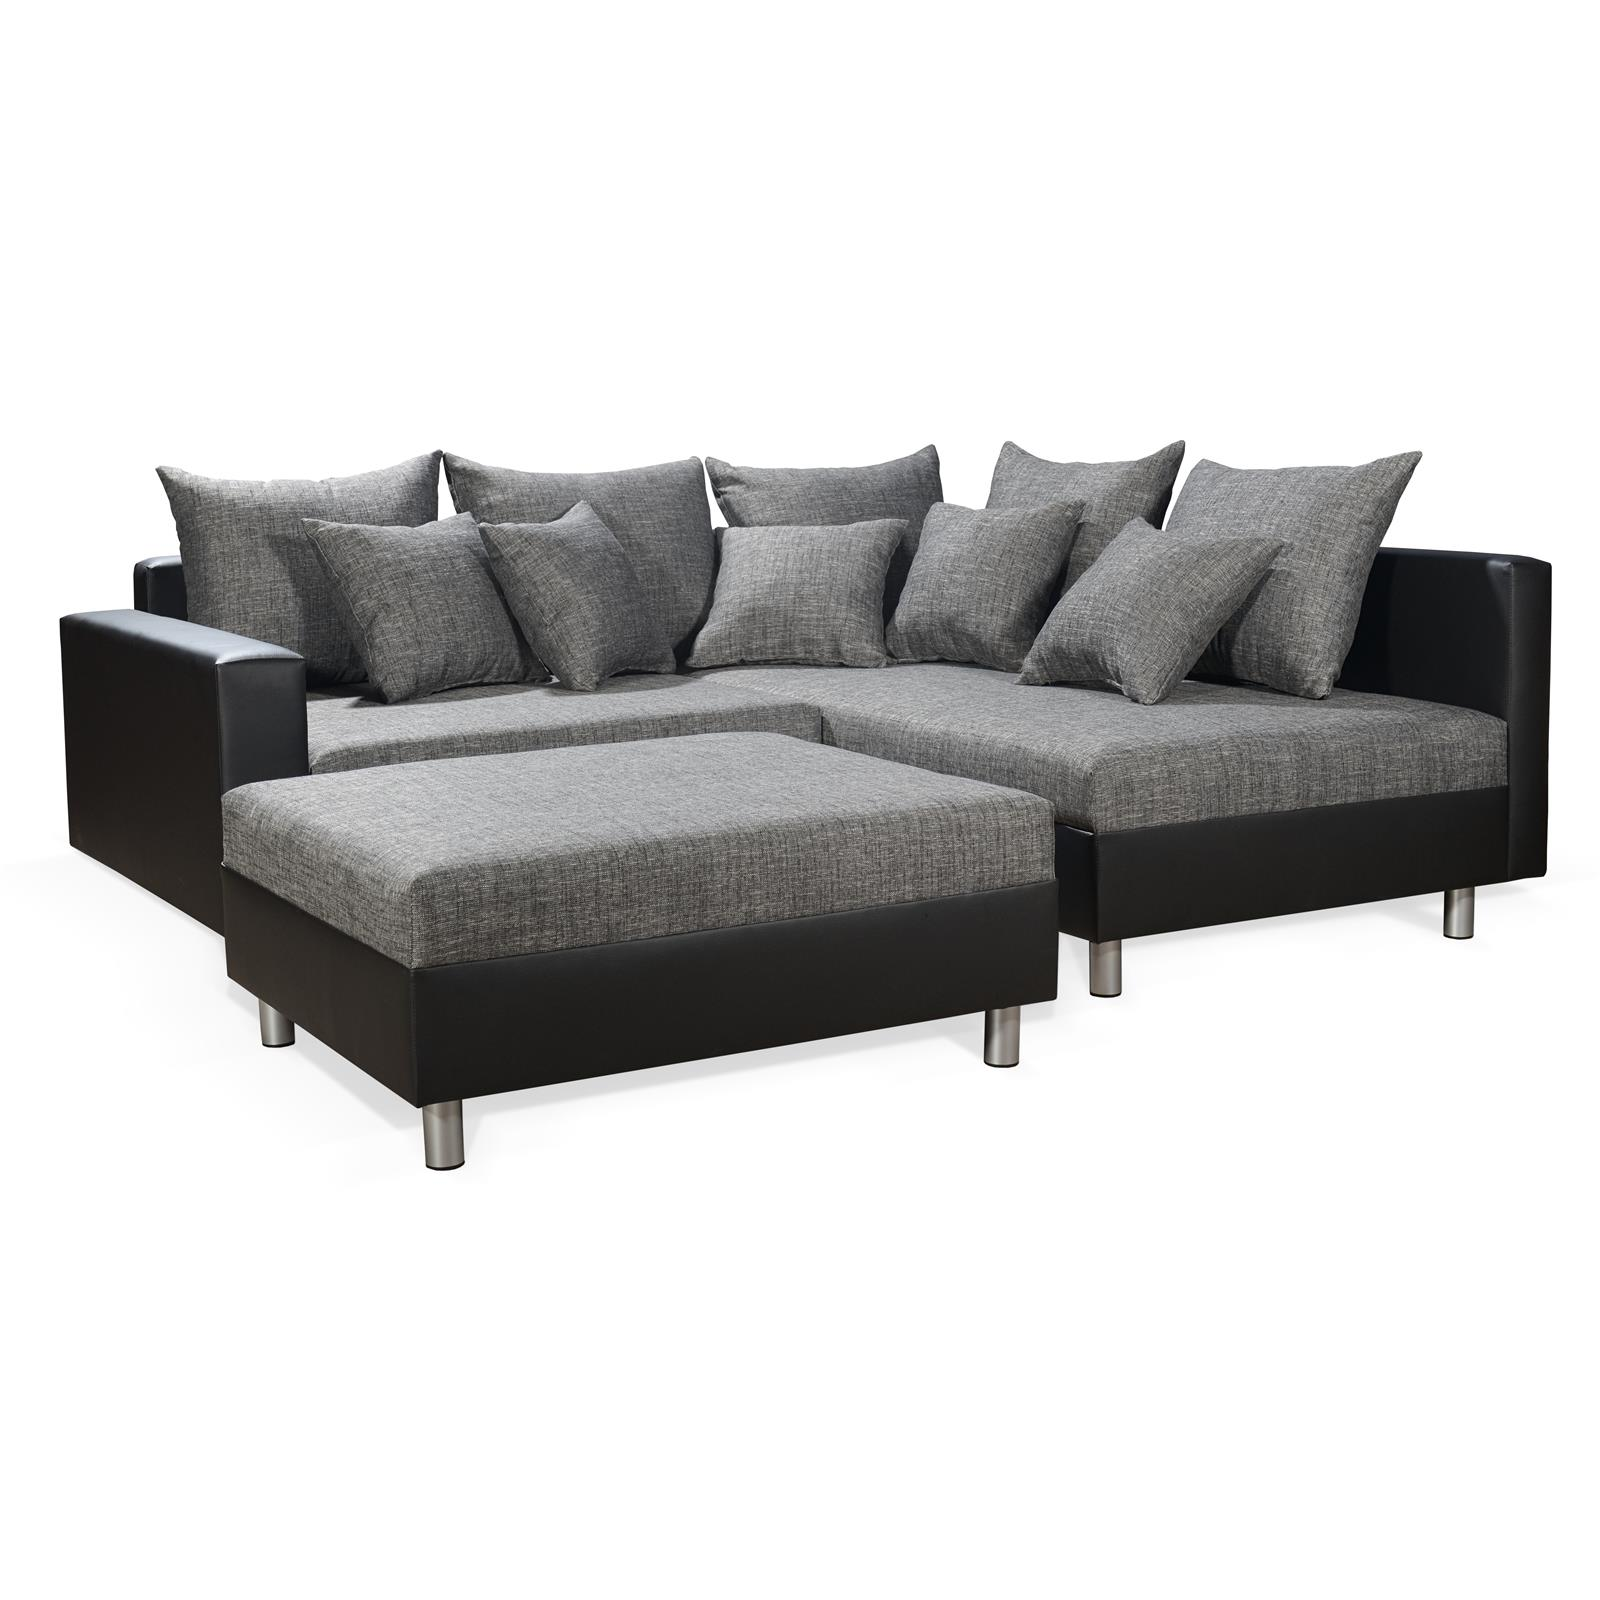 ecksofa couch mit hocker in schwarz weiss grau ottomane. Black Bedroom Furniture Sets. Home Design Ideas